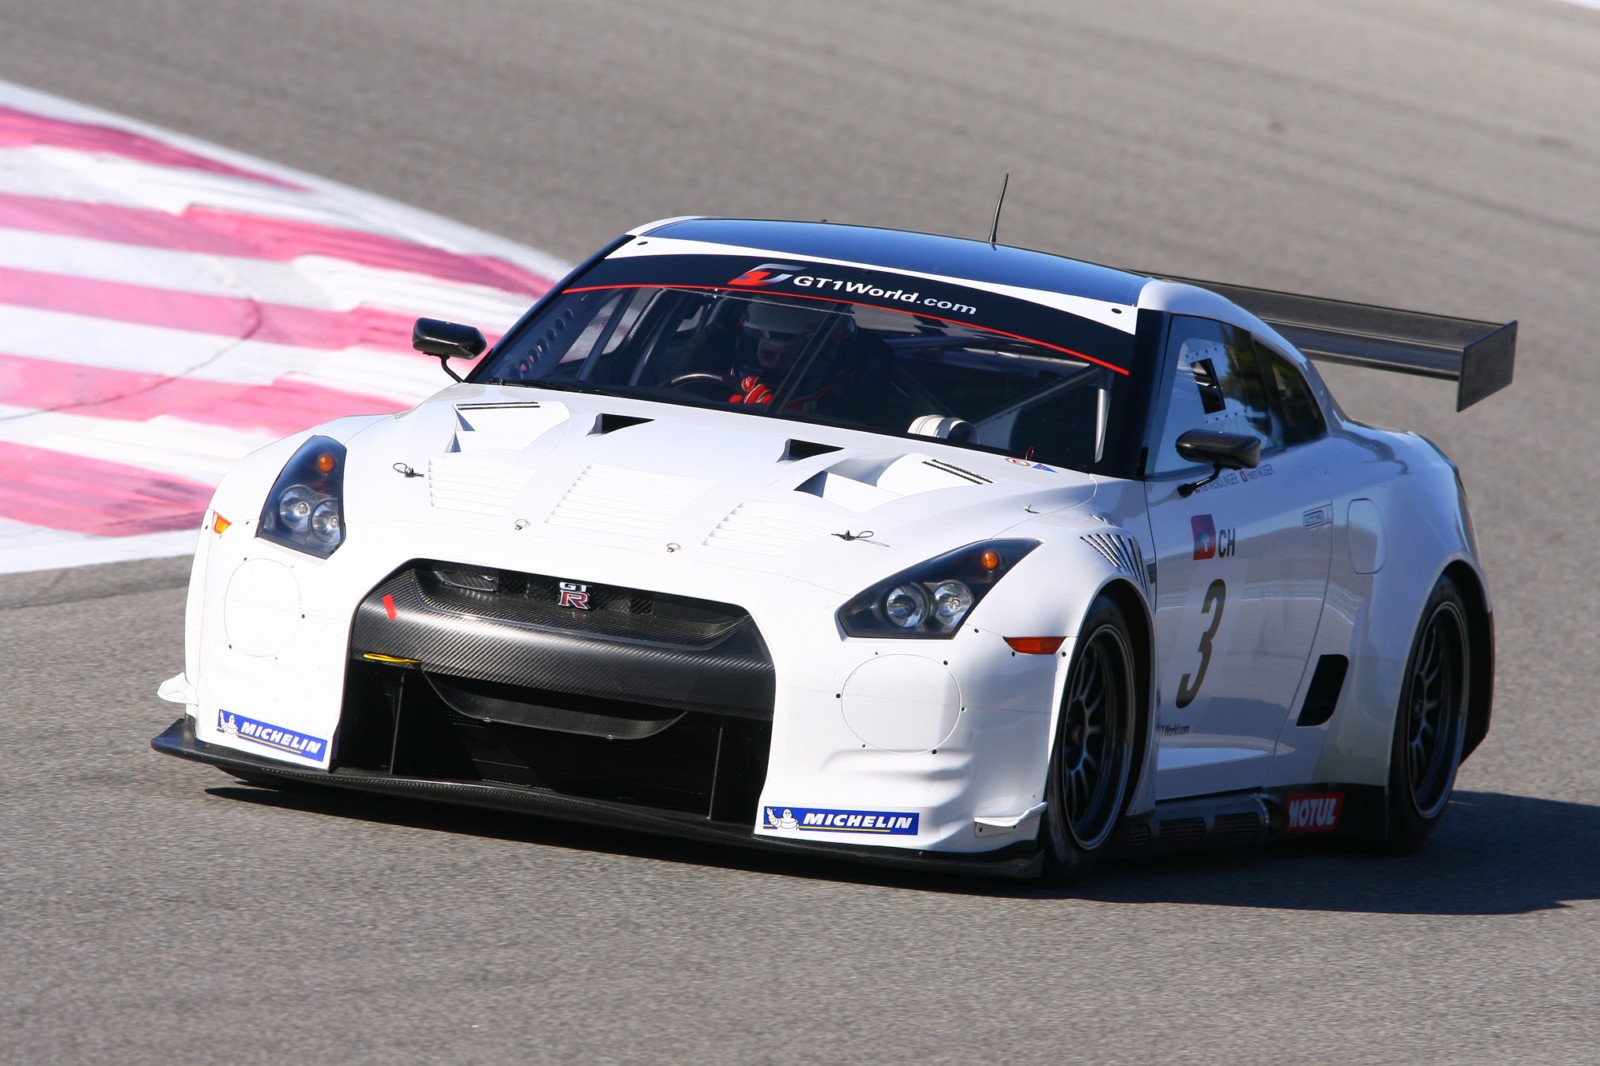 2019 Nissan GT R GT500 Race car photo - 2